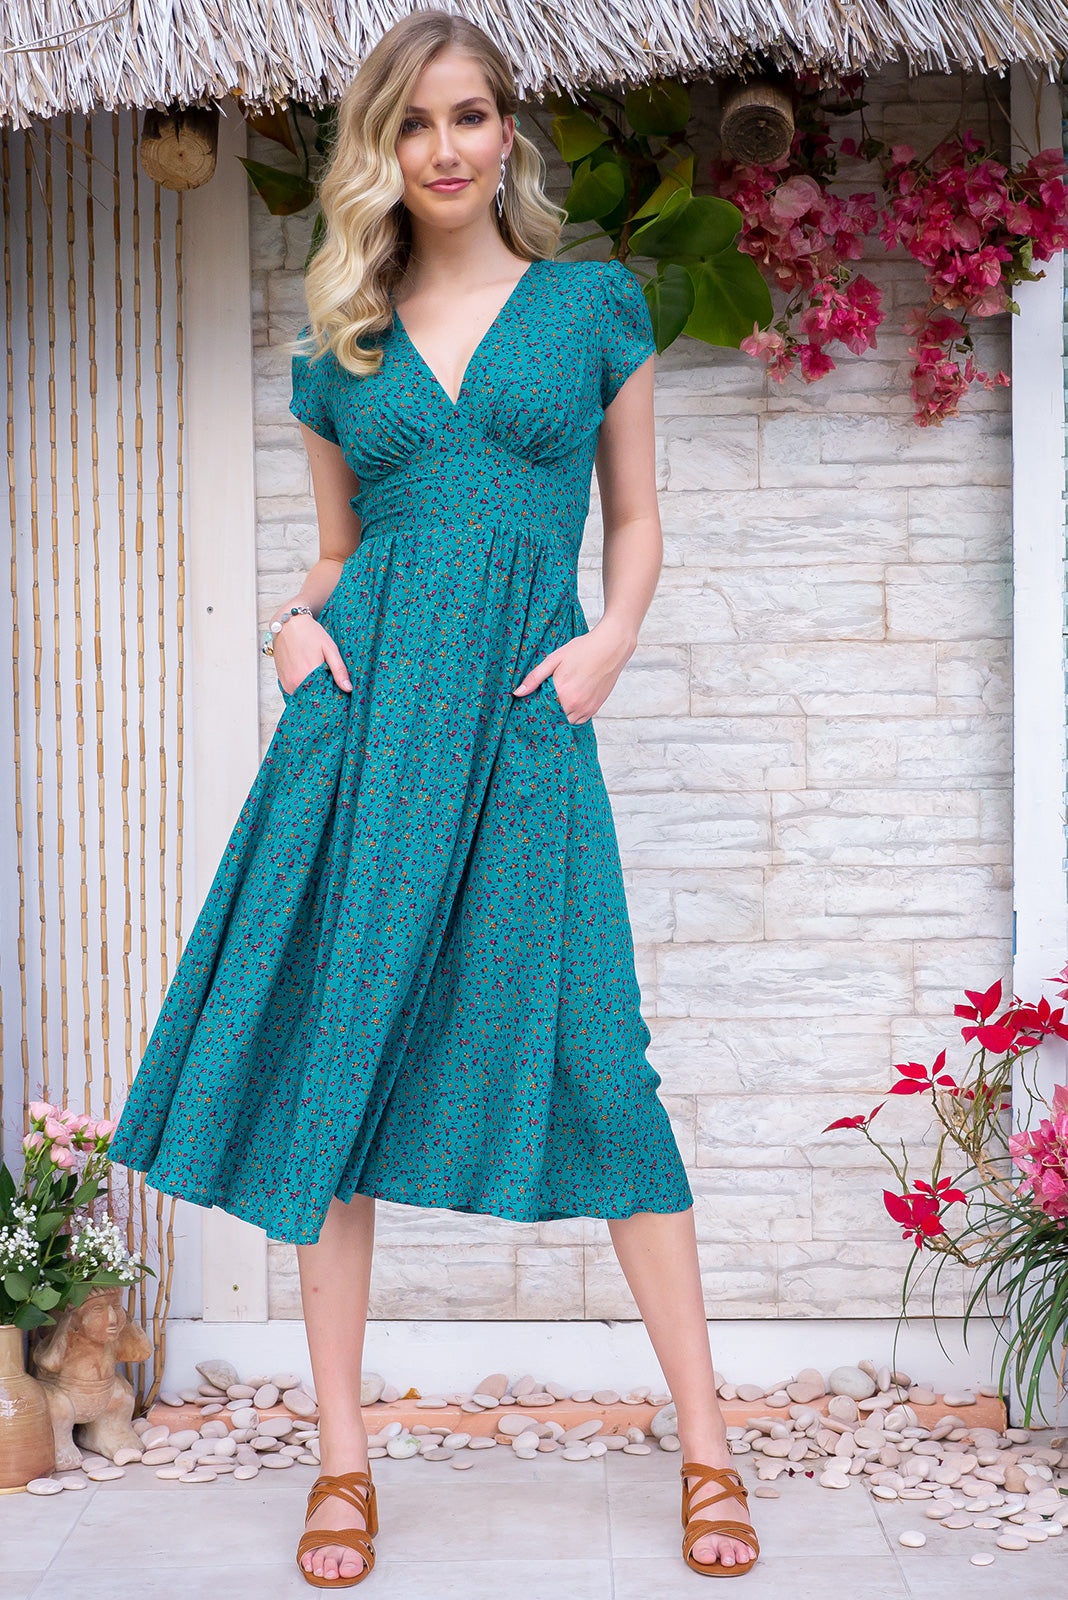 Lizzie Jade Isle Midi Dress - a vintage inspired classic design. Features a rich jade base rayon fabric sprinkled with a tiny floral print. Side pockets, v neck, basque waist, cap sleeves.